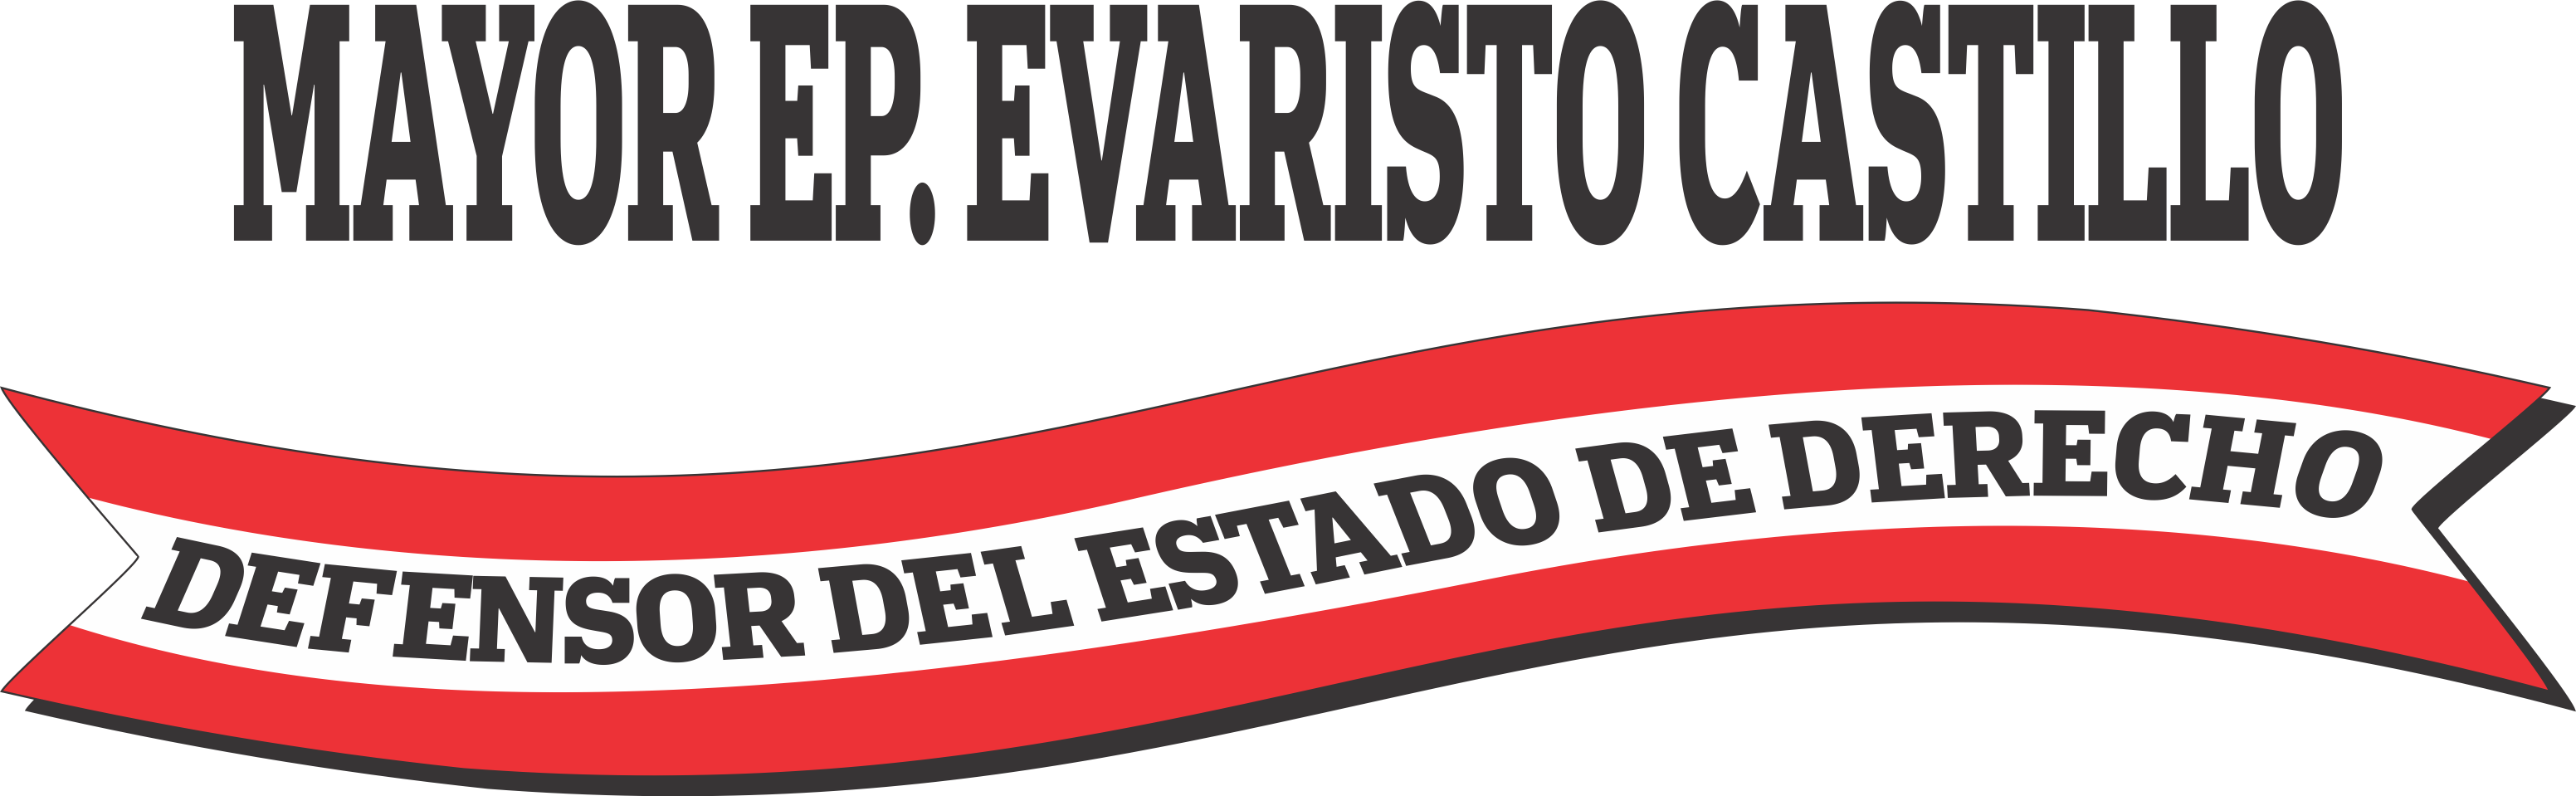 Mayor EP Evaristo Castillo